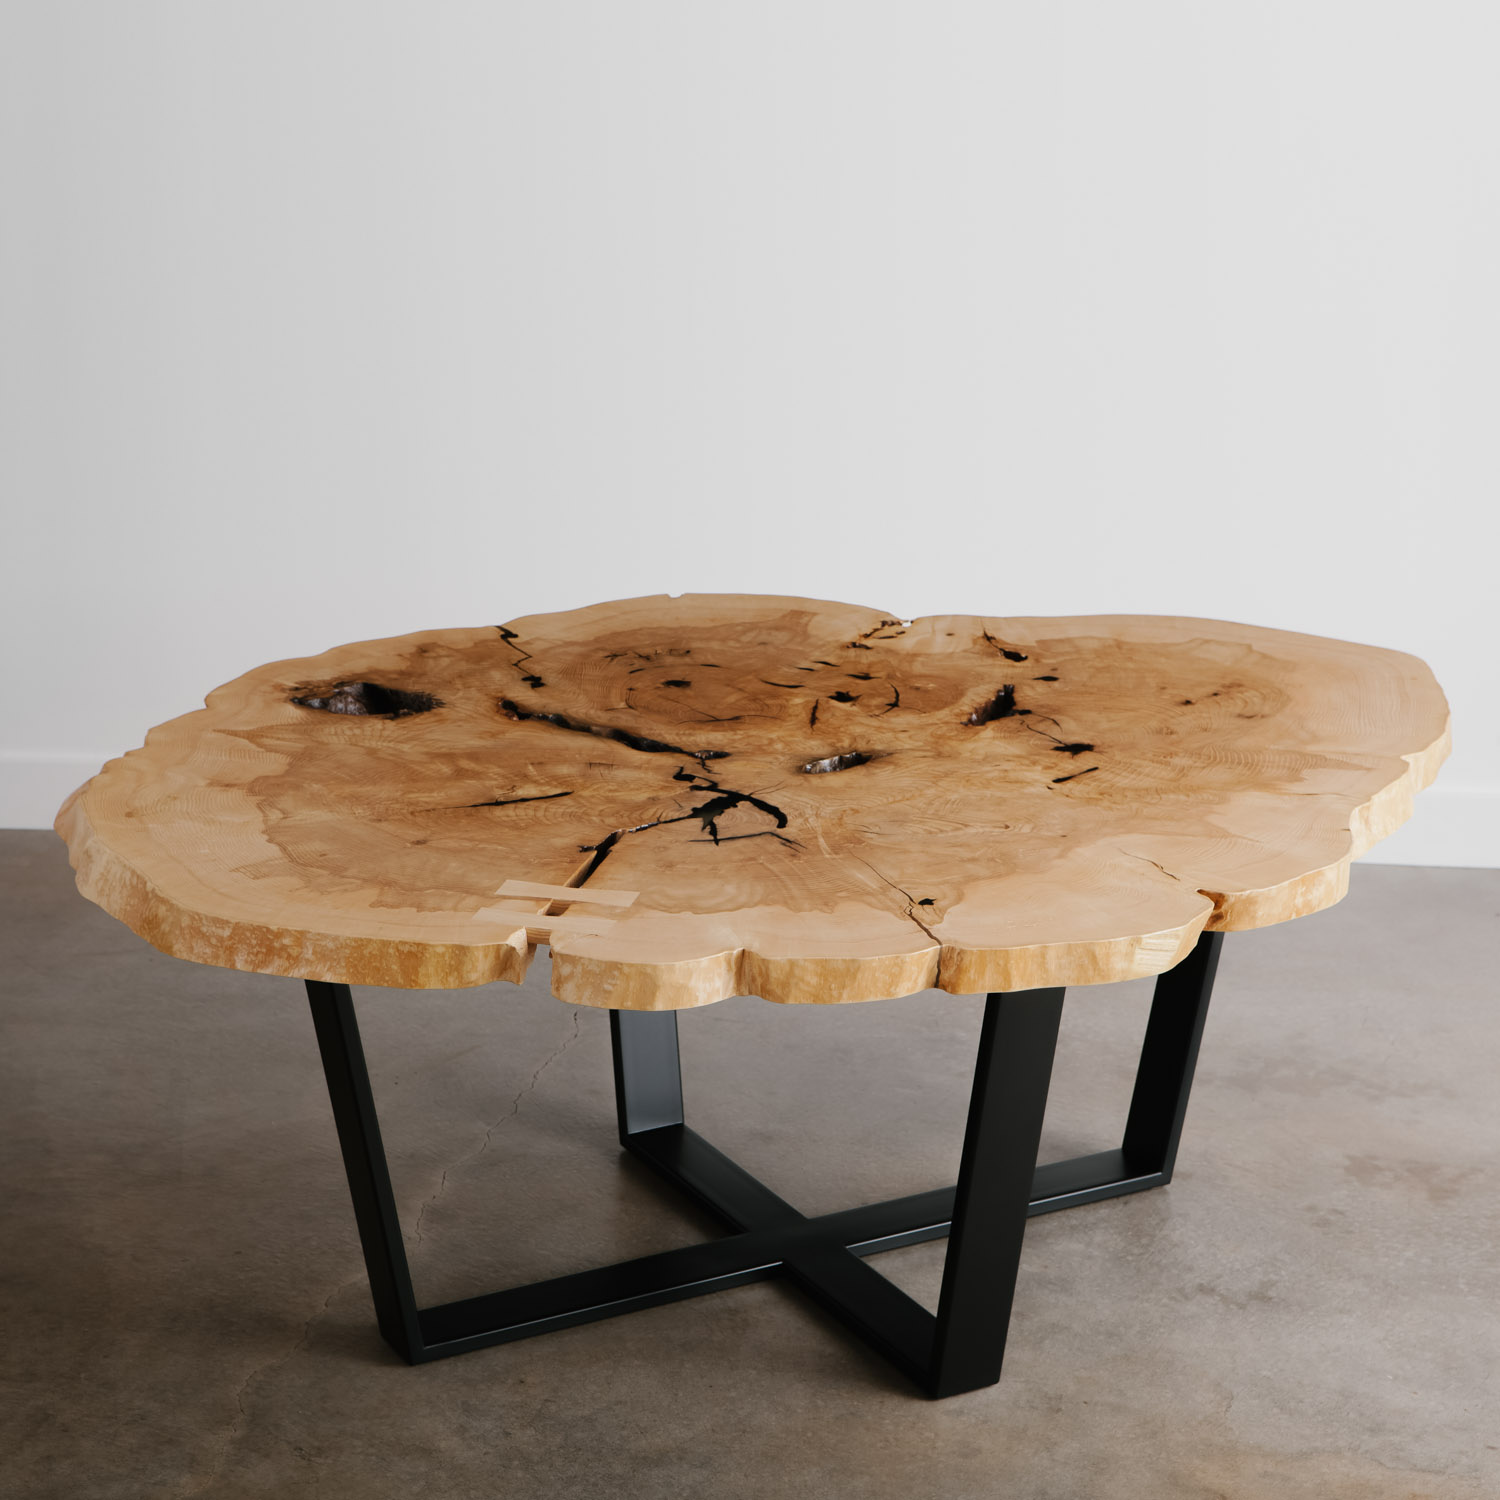 Large round live edge ash table with natural tree characteristics